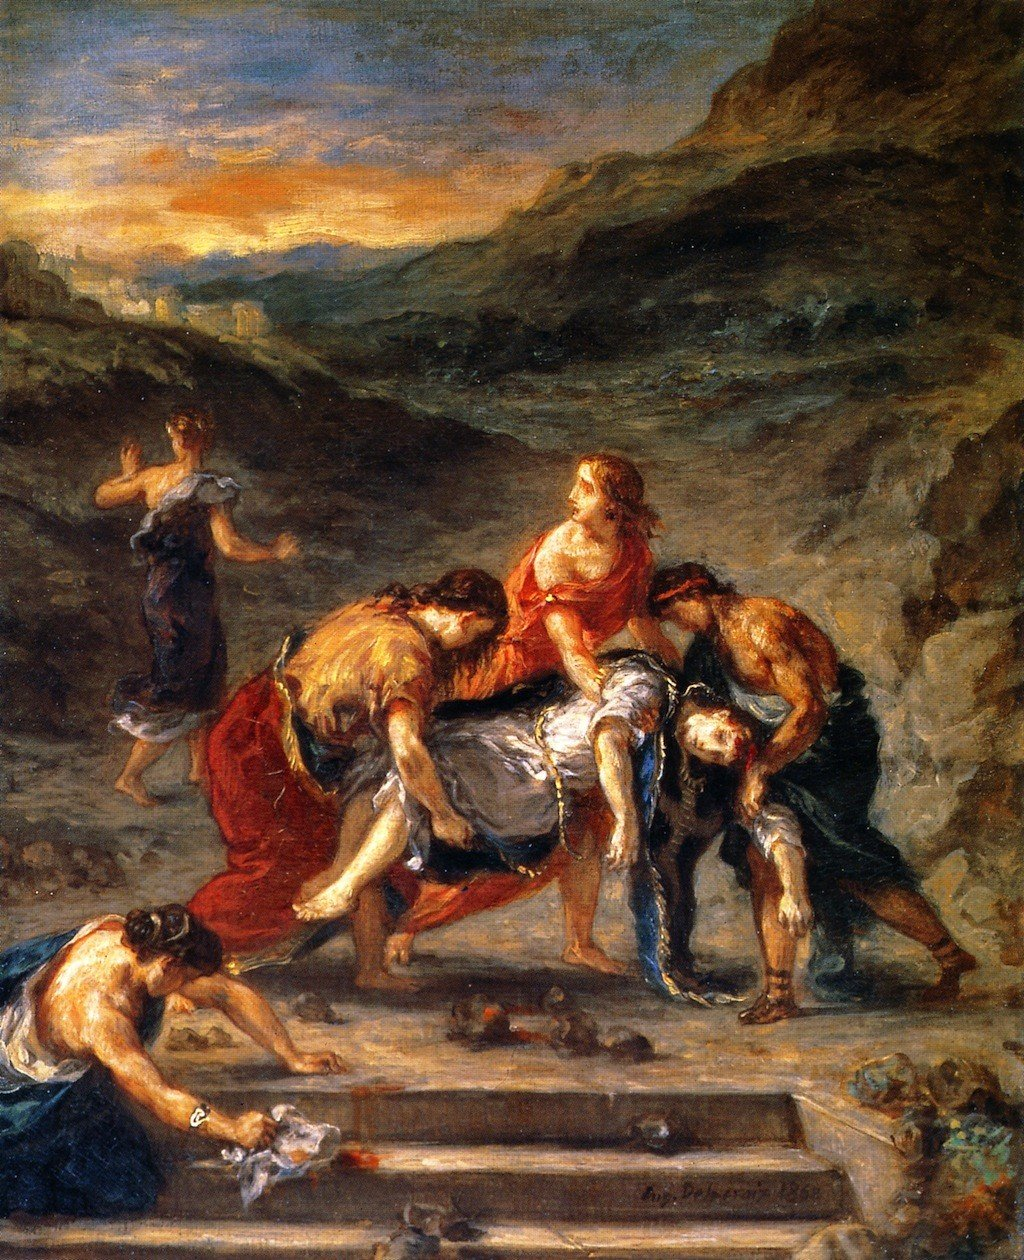 Saint Stephen Borne Saint Away by by His Disciples – by B01GGDFOYQ Eugene Delacroix – Unframed 24